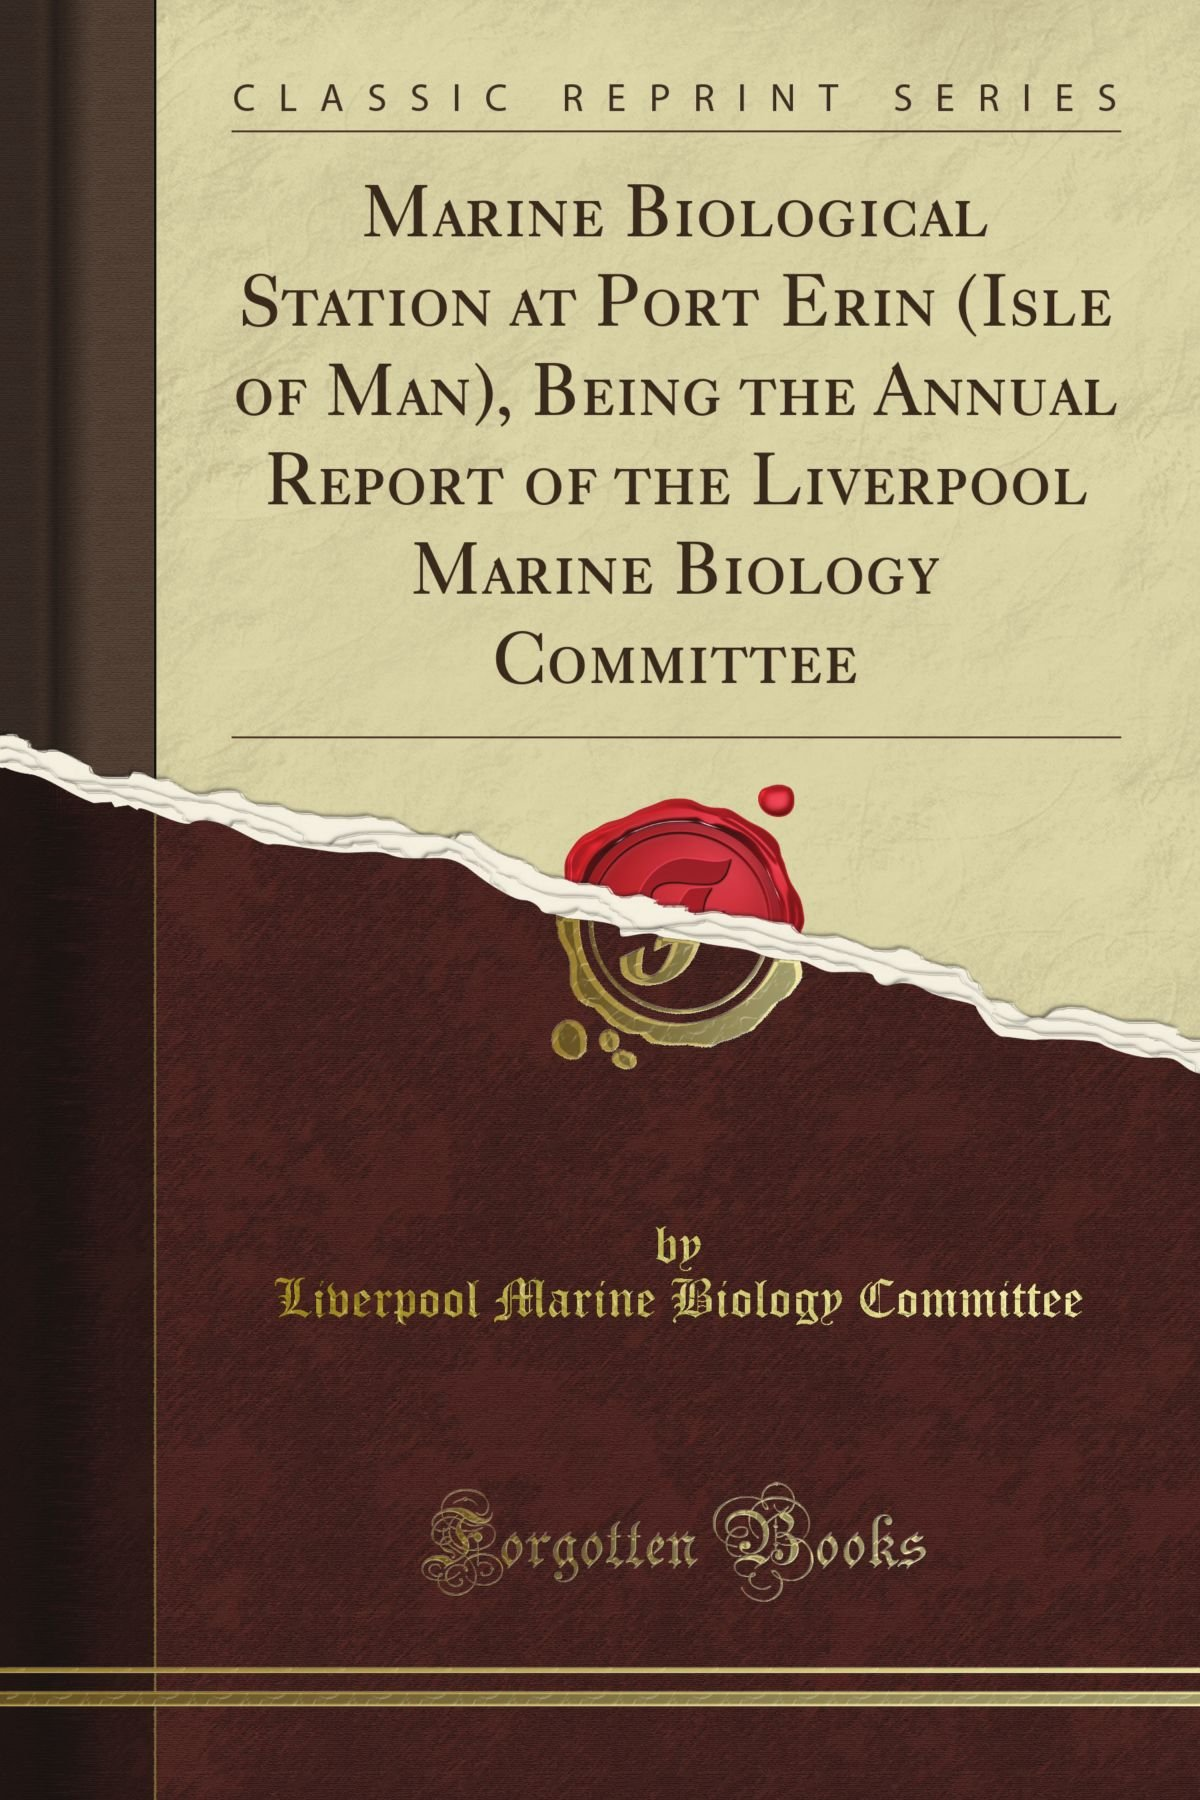 Download Marine Biological Station at Port Erin (Isle of Man), Being the Annual Report of the Liverpool Marine Biology Committee (Classic Reprint) PDF